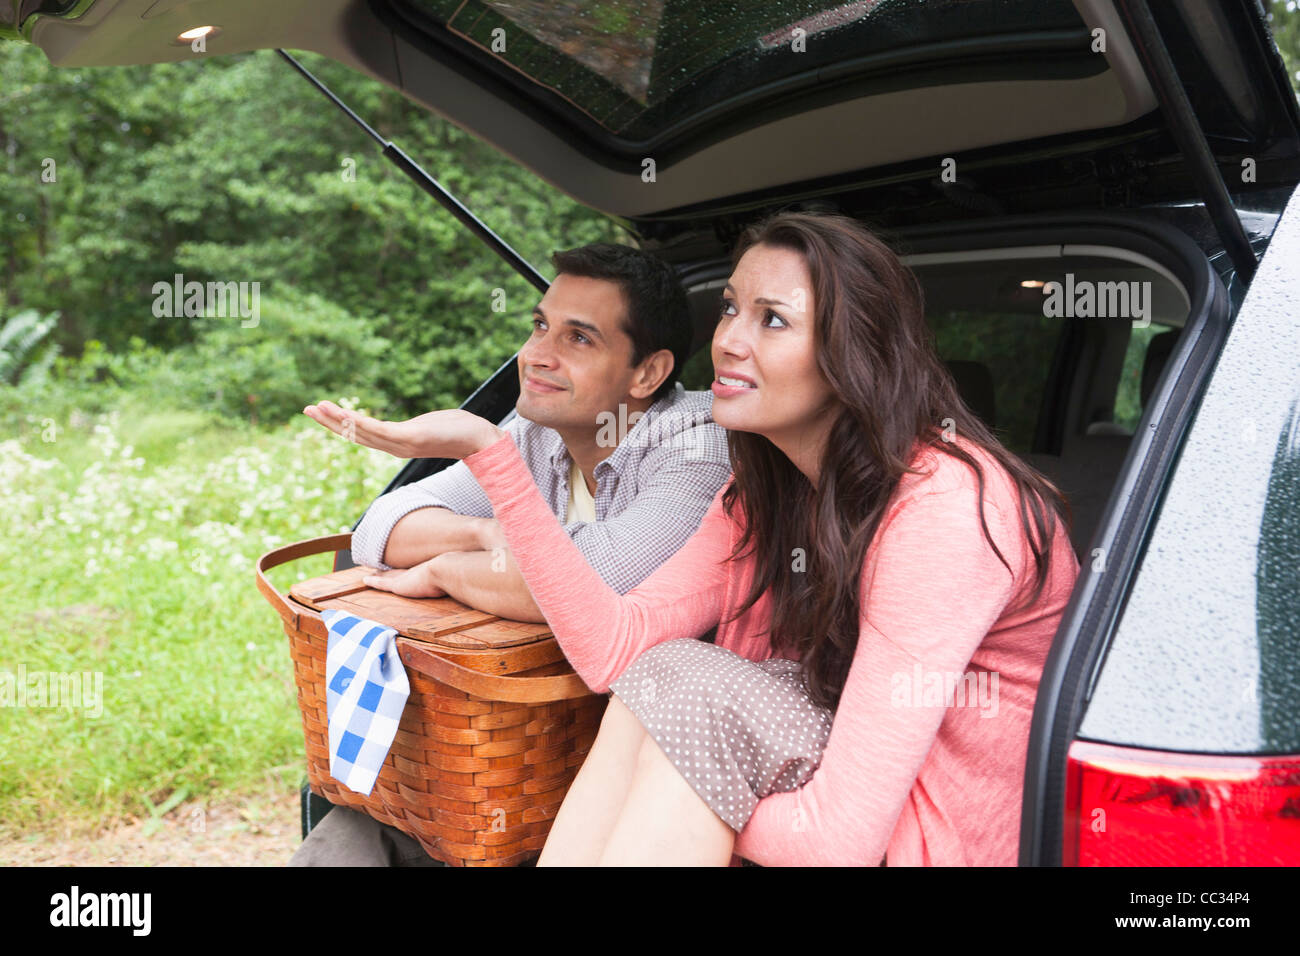 USA, New Jersey, Couple with picnic basket sitting in car trunk - Stock Image